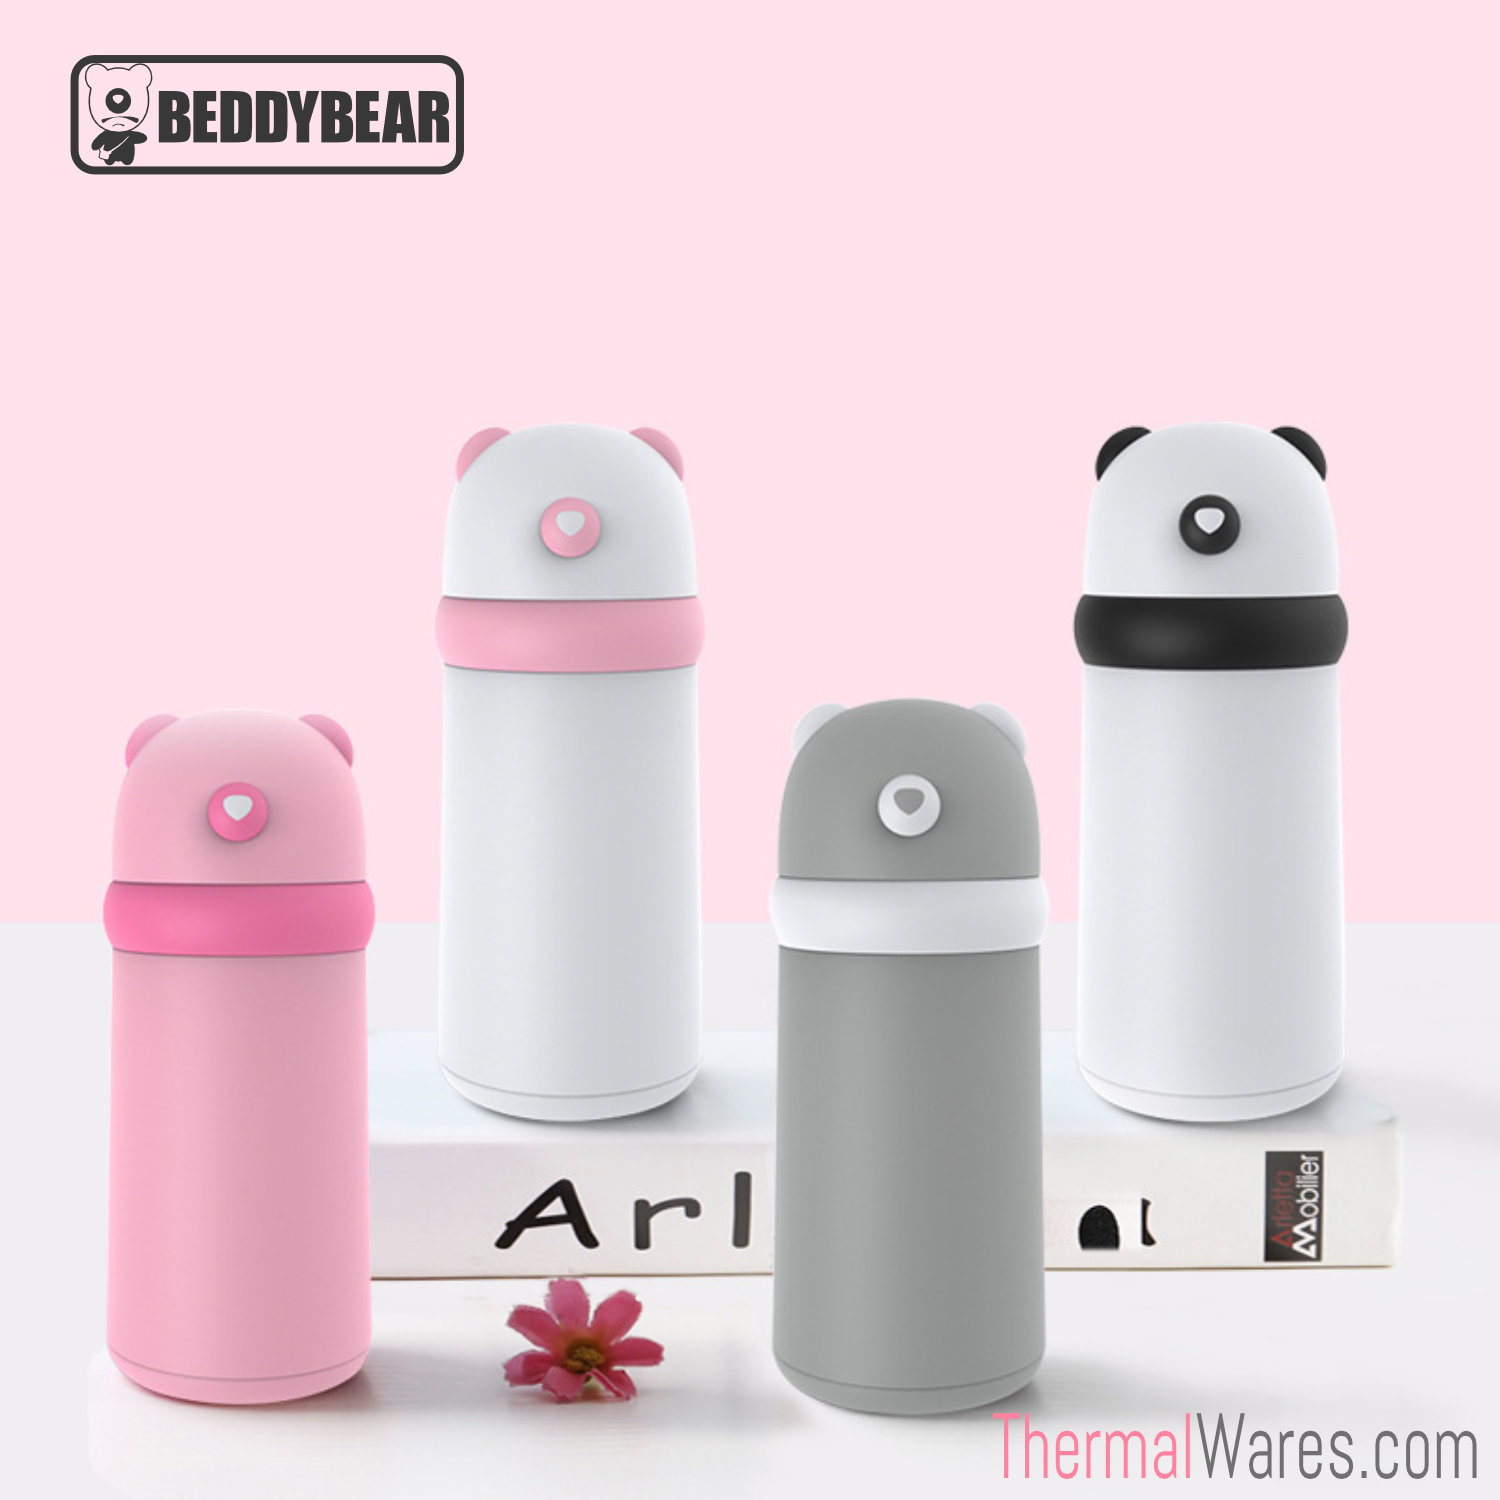 BeddyBear Glass Lined Water Bottle in Pink/Dark Pink, White/Pink, Grey/White and White/Black Colors